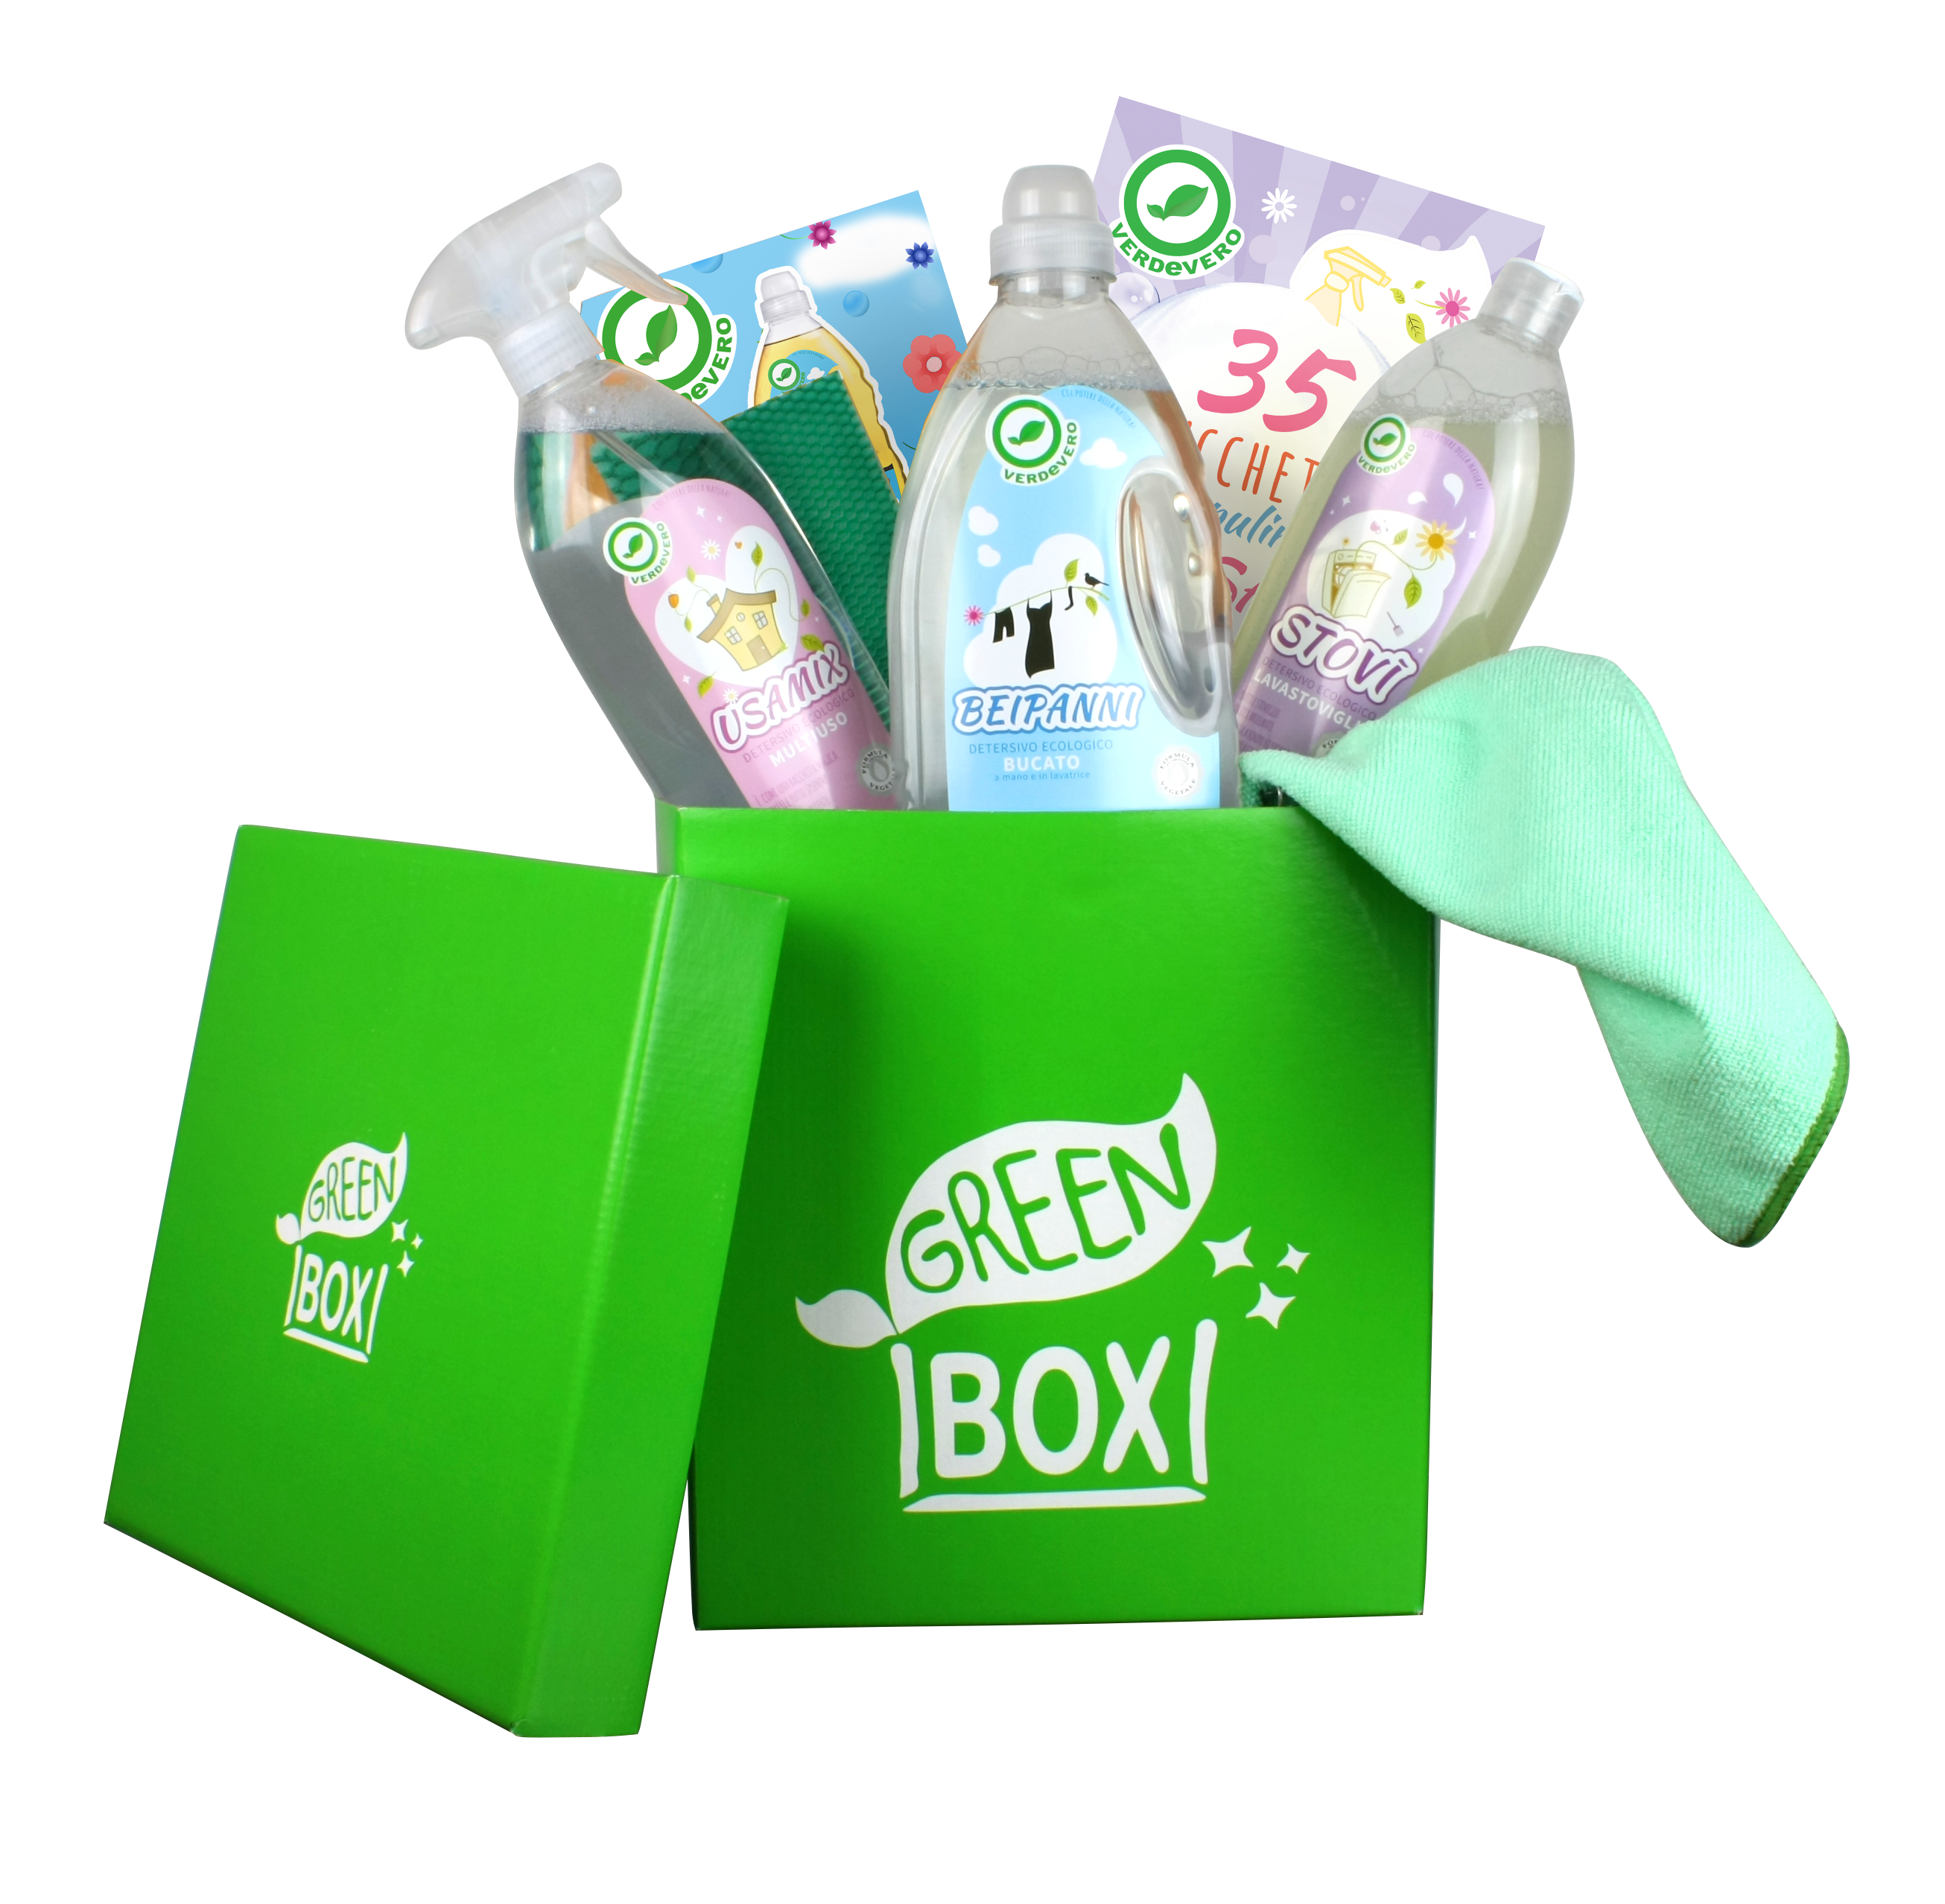 greenbox stovì